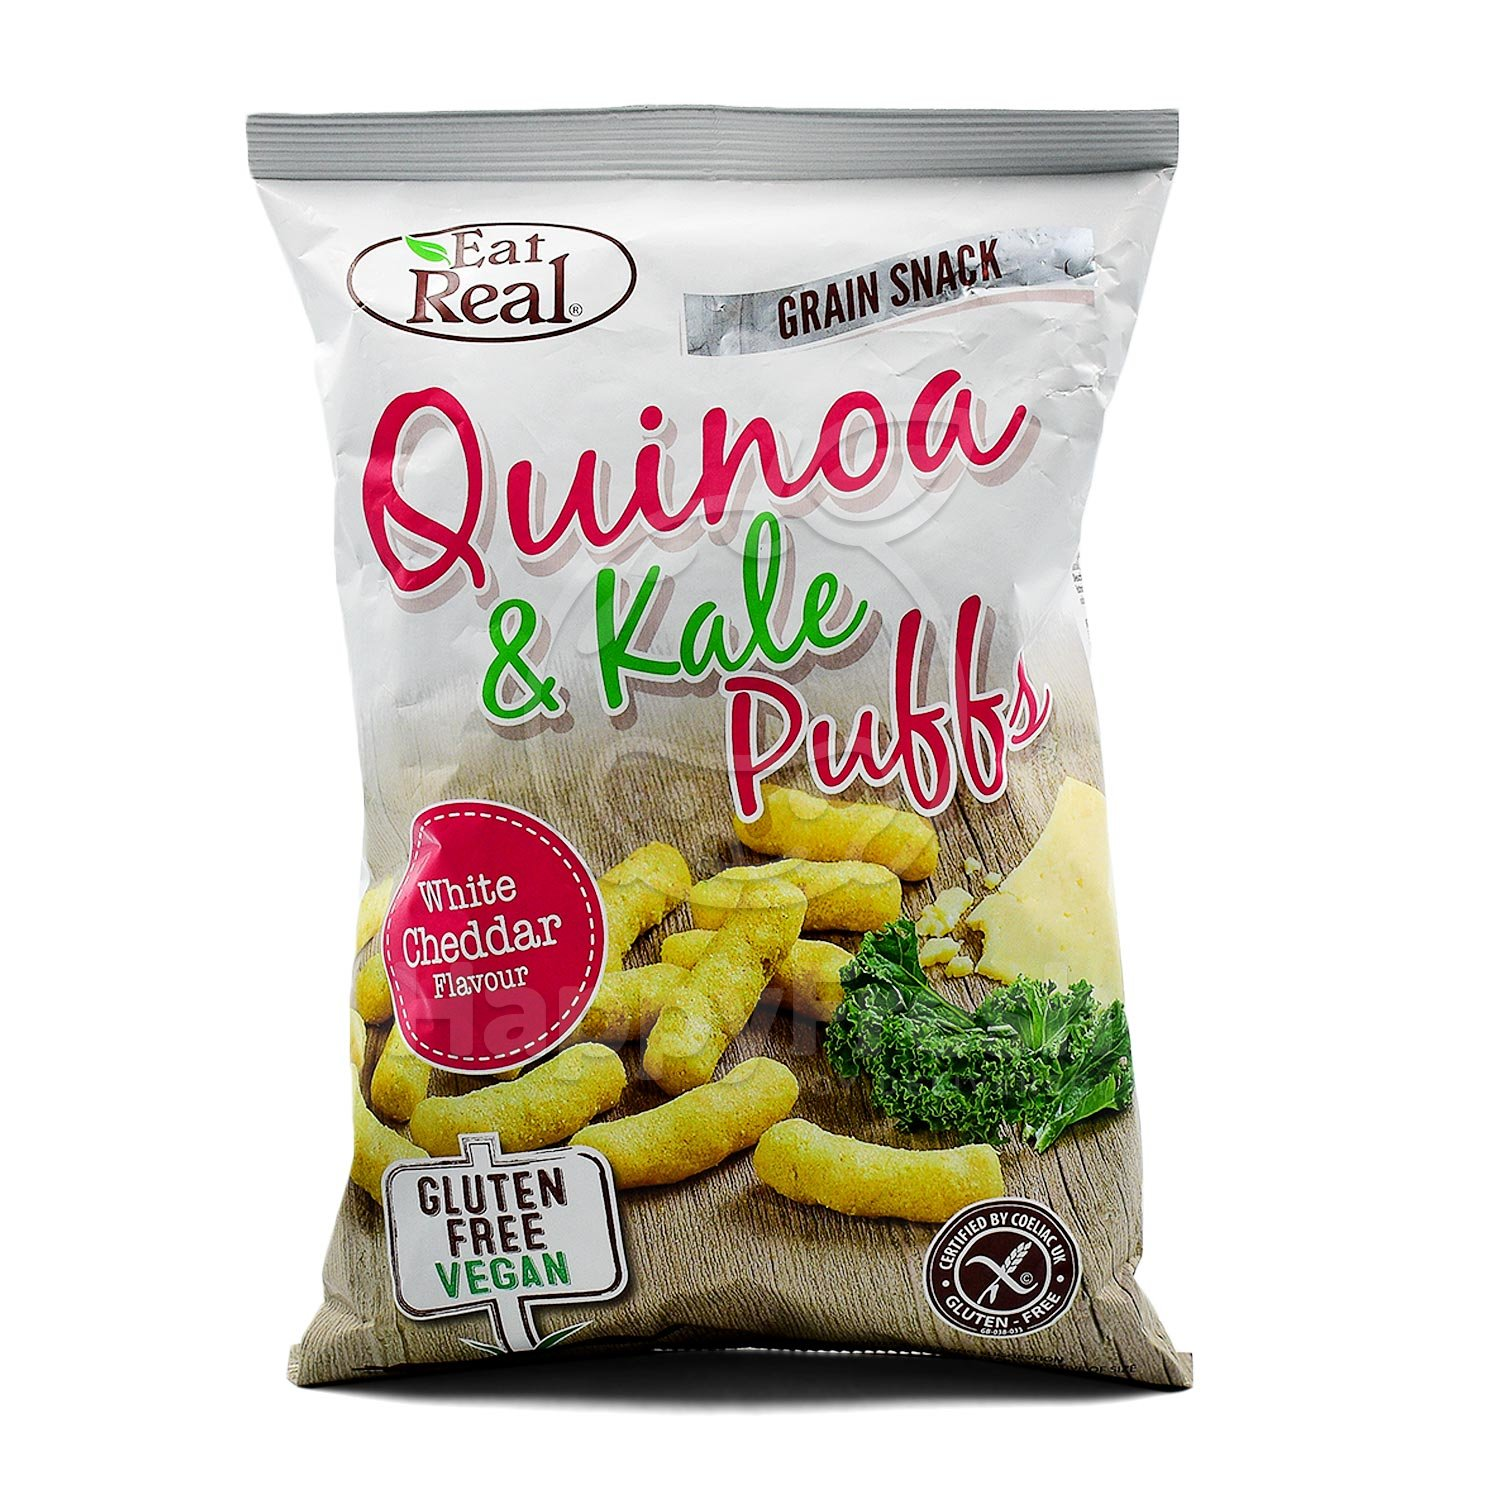 Eat real quinoa & kale puffs white cheddar 113g